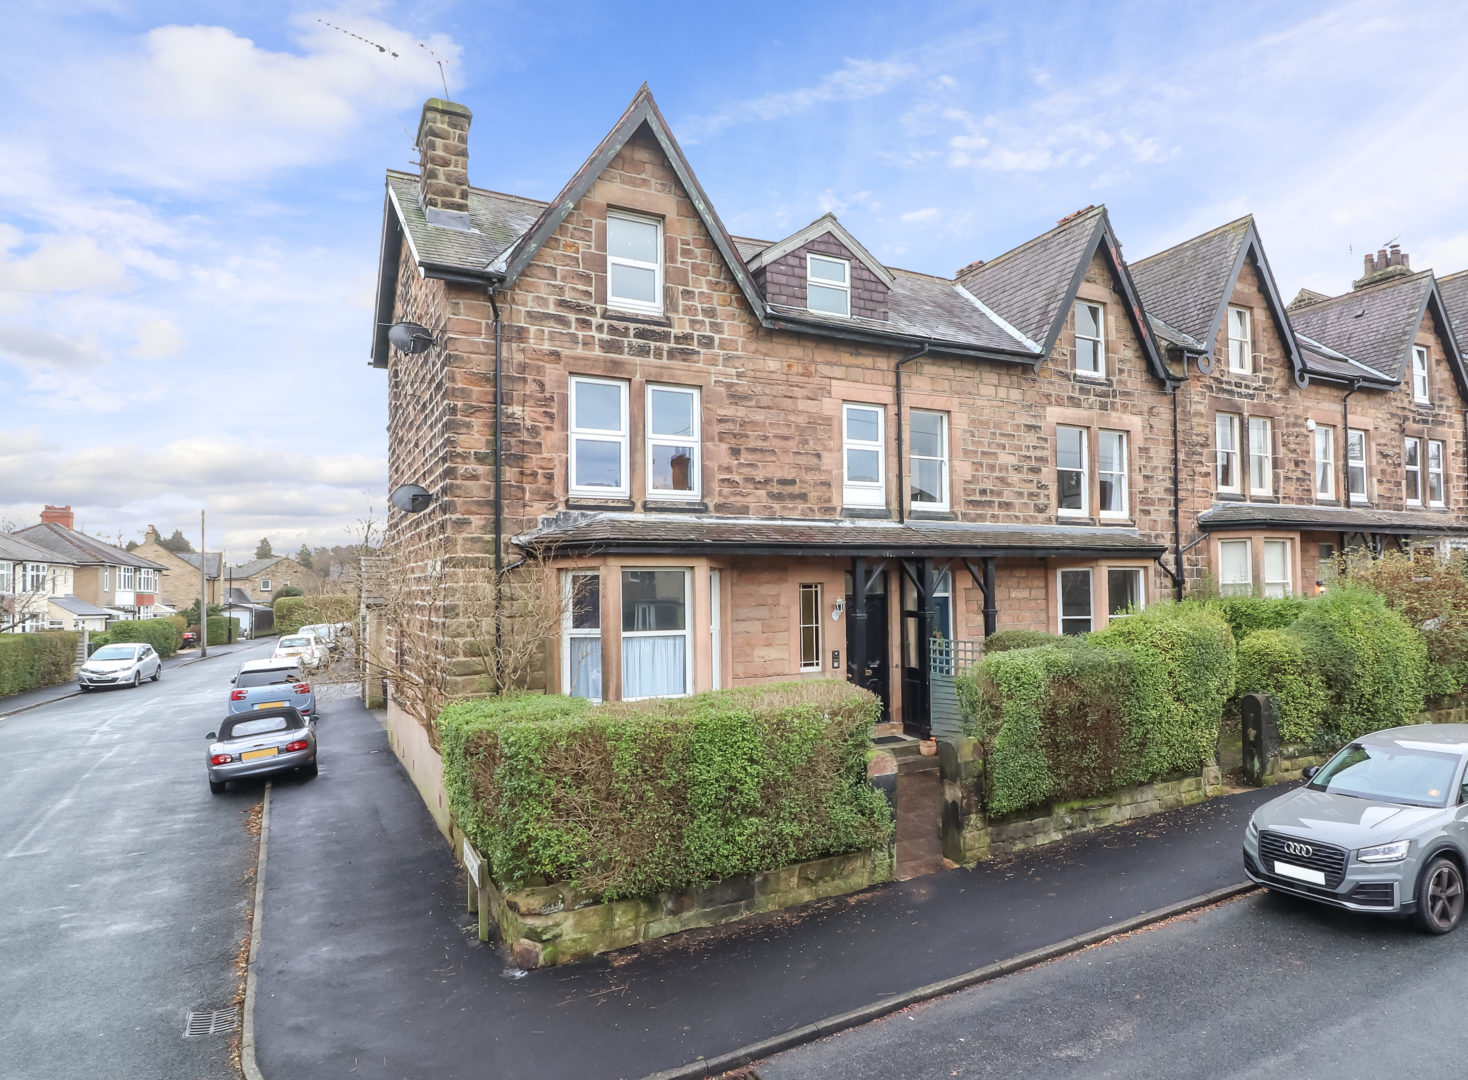 The Harrogate Girls big move, selling outs, conveyancing, property